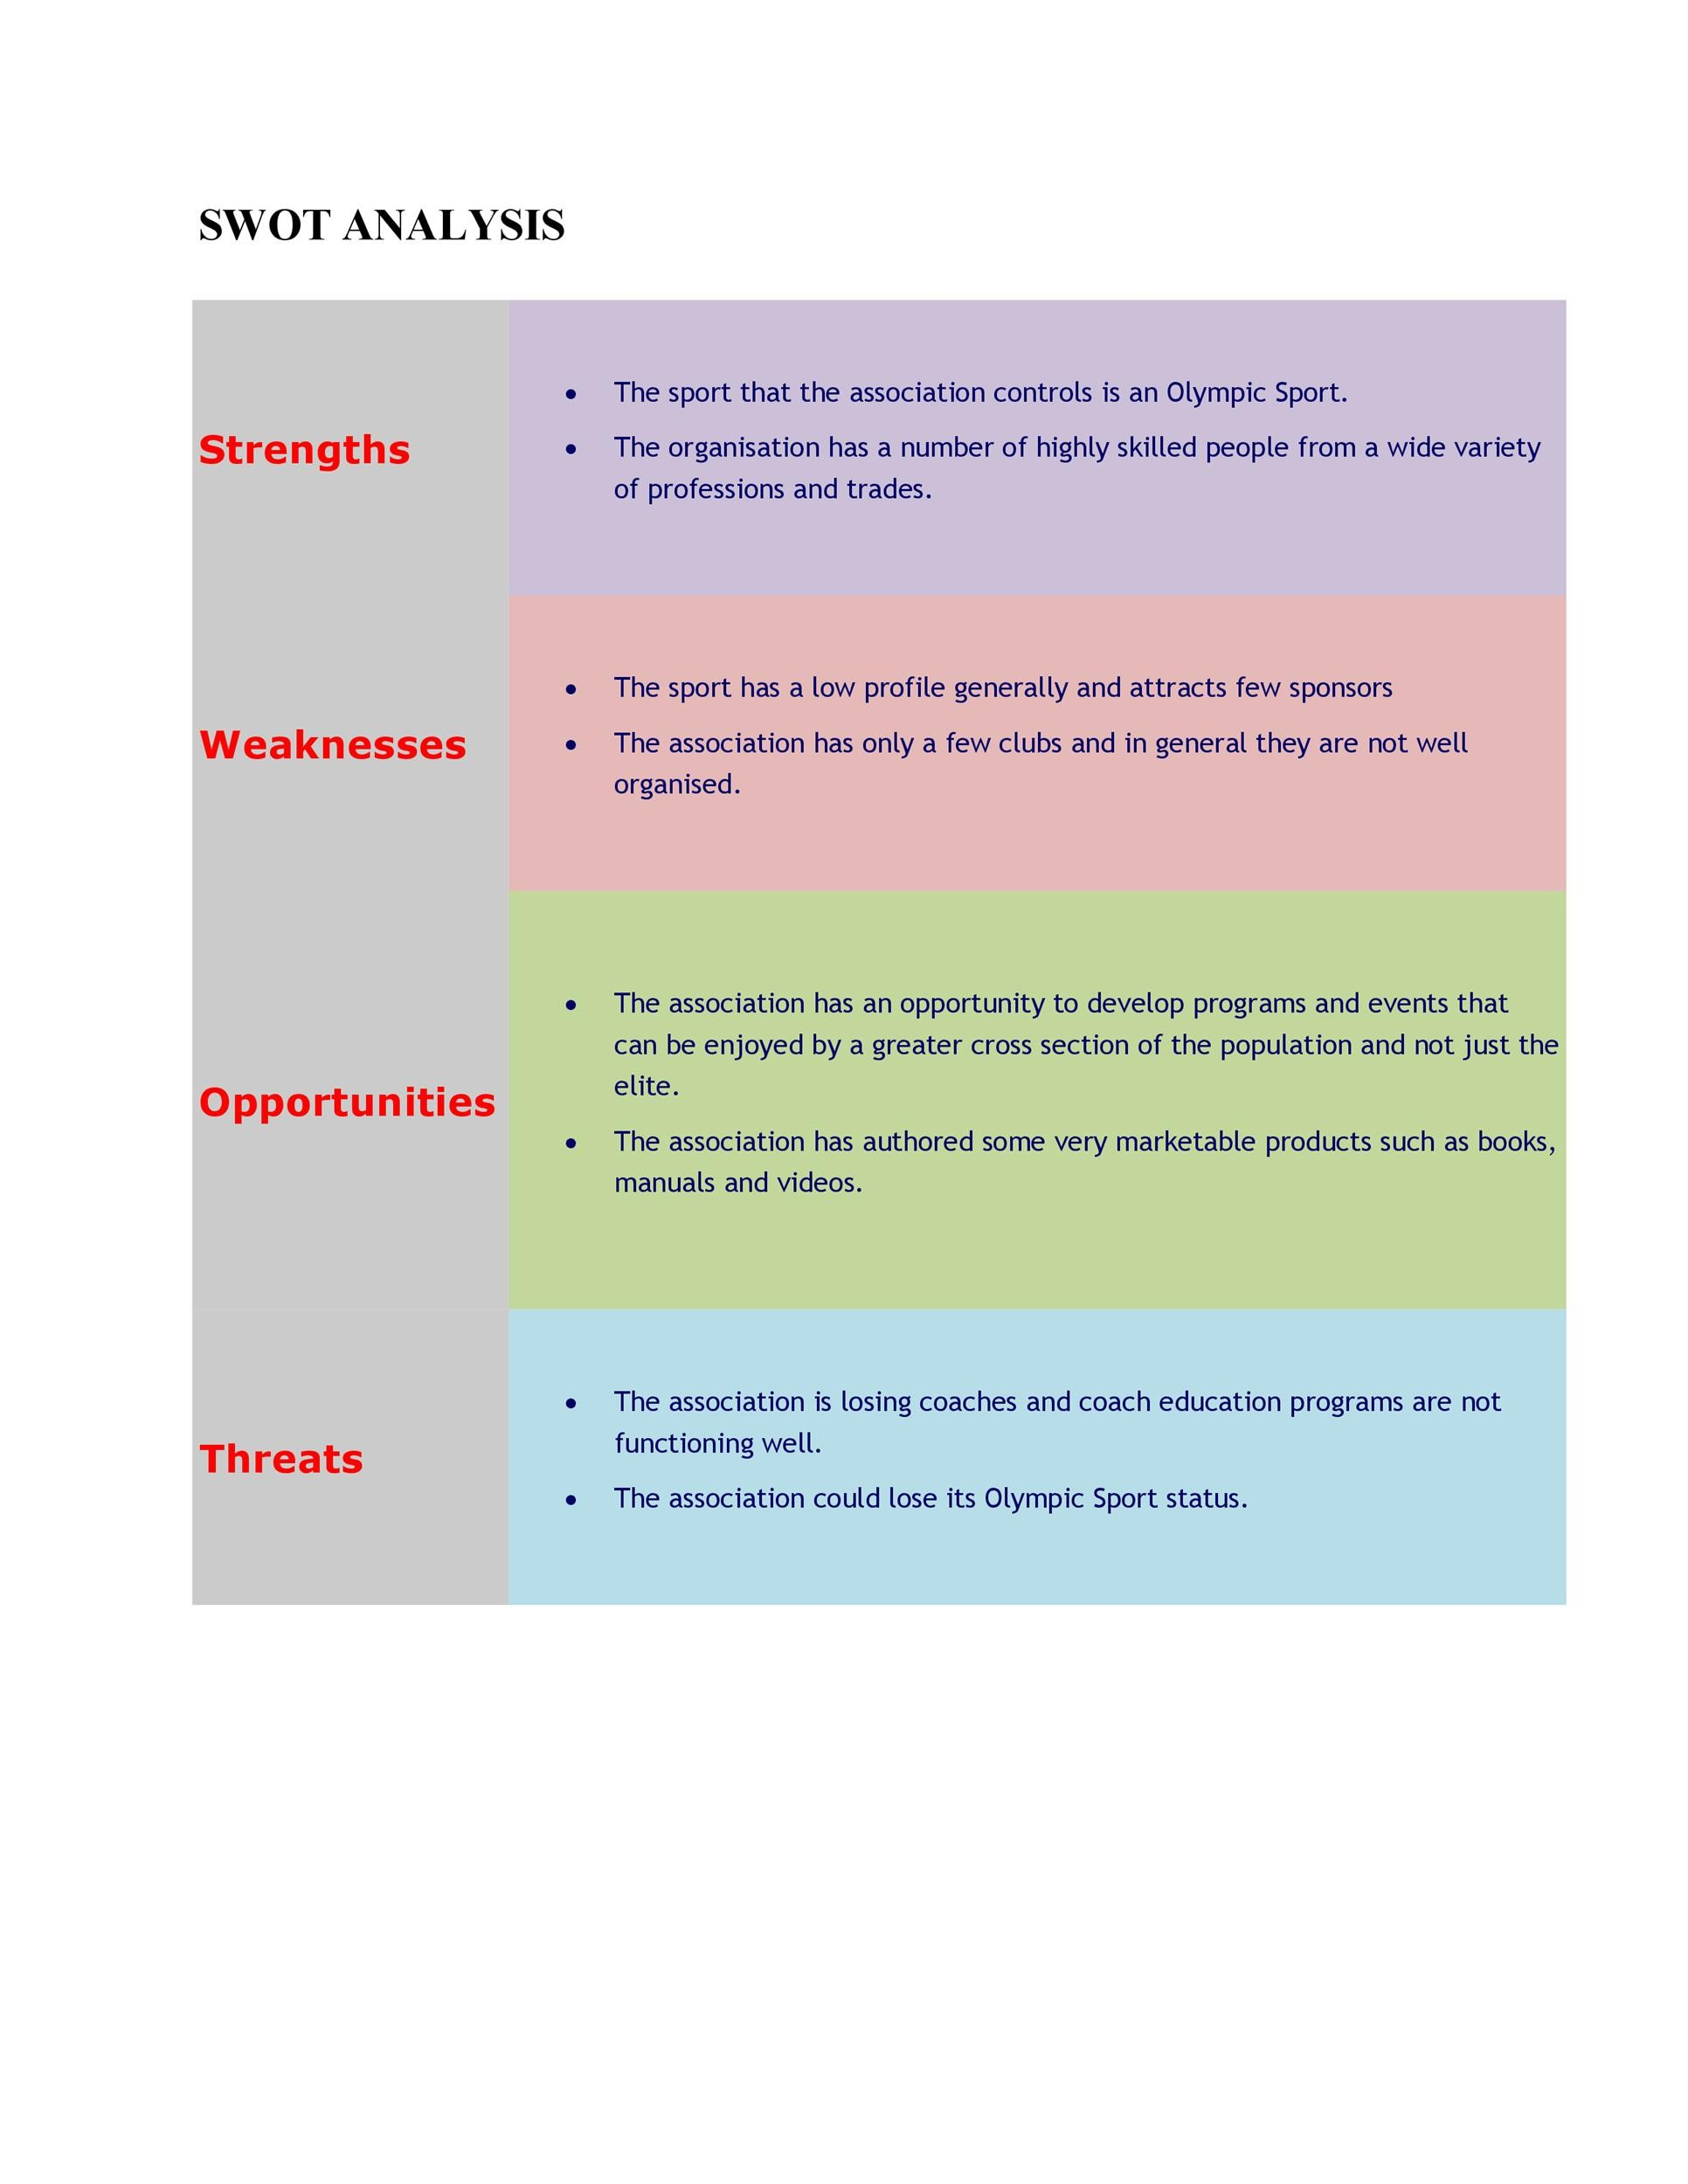 40 powerful swot analysis templates examples free swot analysis template 03 accmission